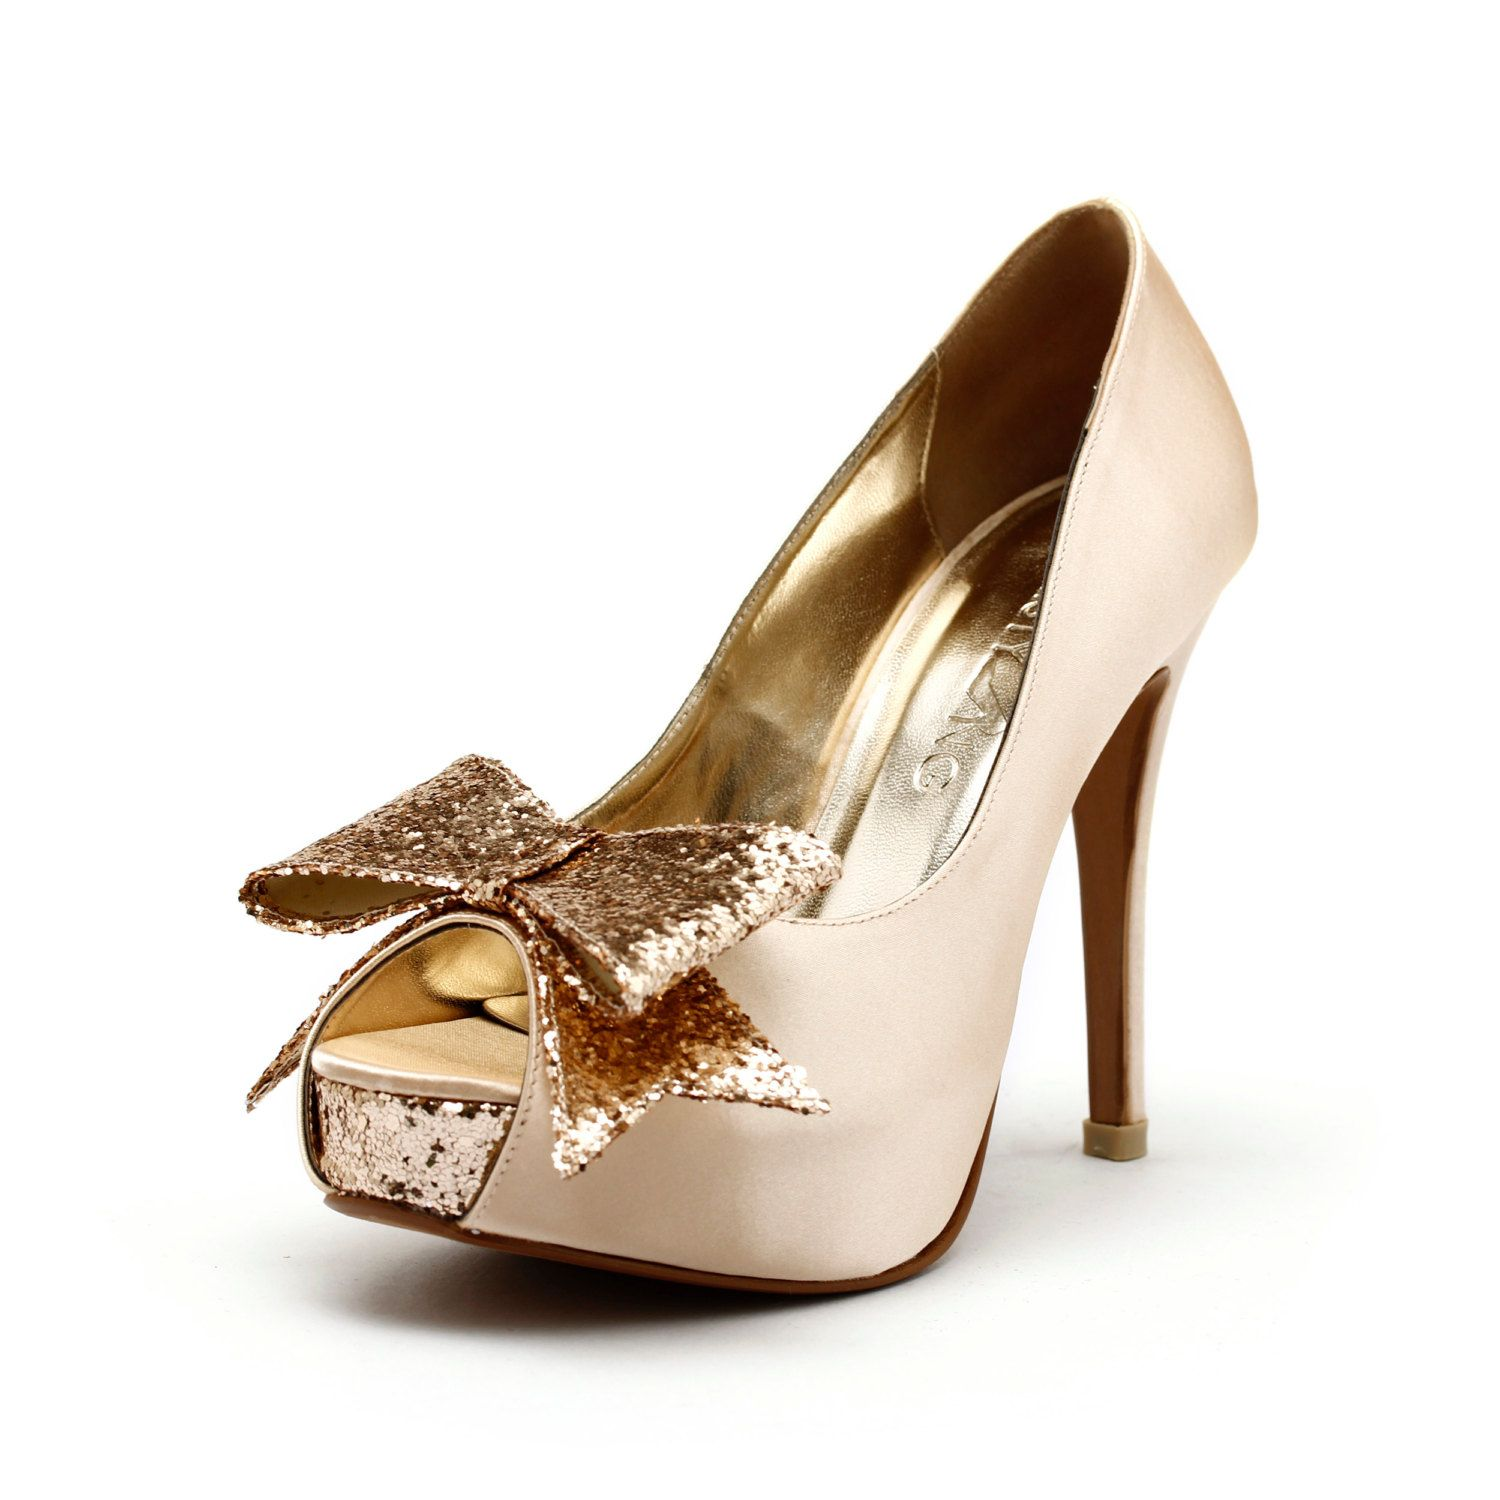 Cranberry champagne wedding - Items Similar To Cranberry Champagne Wedding Heels Champagne Gold Wedding Shoes With Glitter Gold Glitter Wedding Heels Champagne Gold Wedding Shoes On